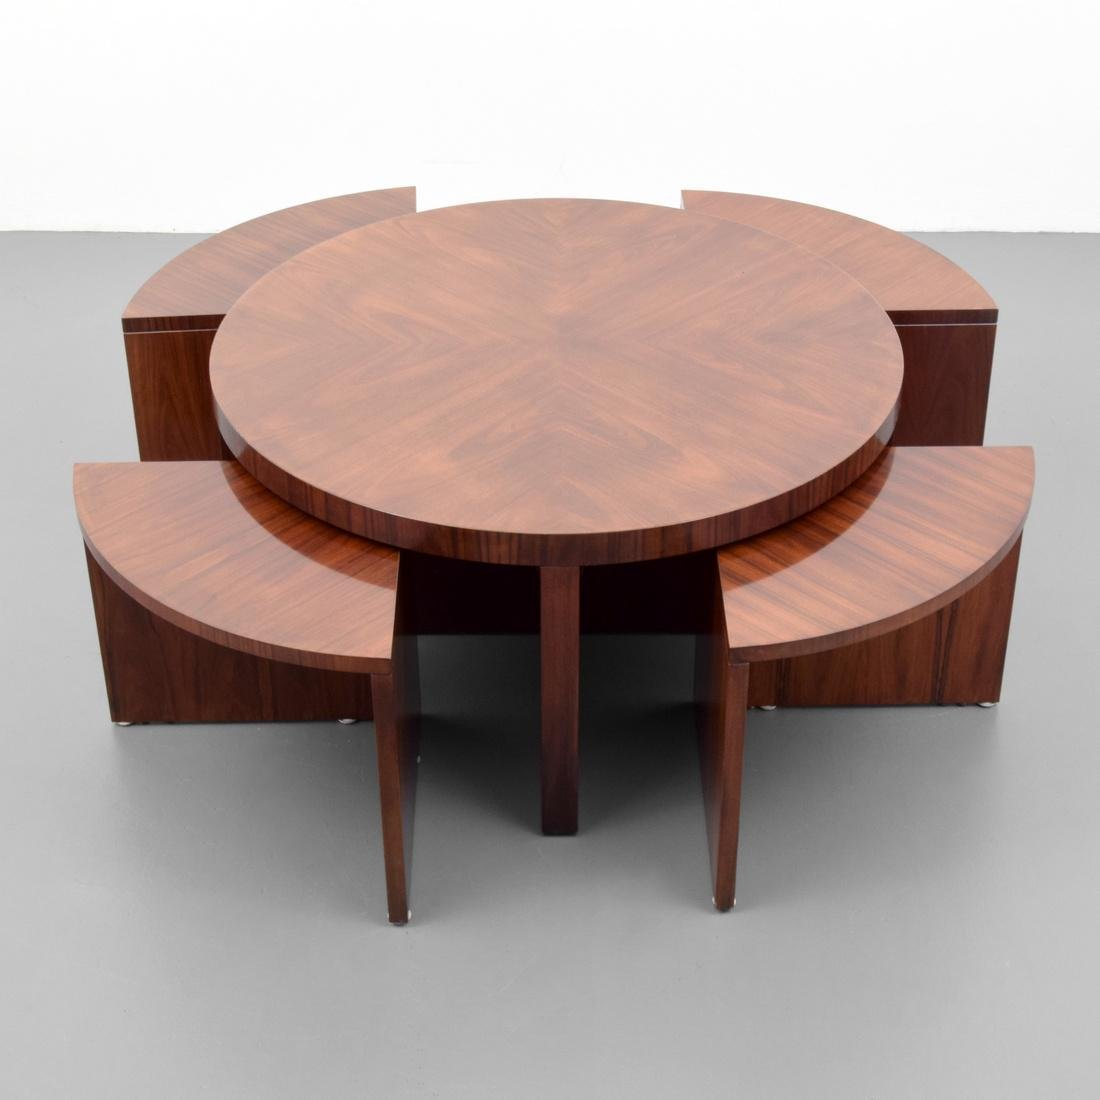 Ralph Lauren DUKE Coffee Table With Nesting Tables